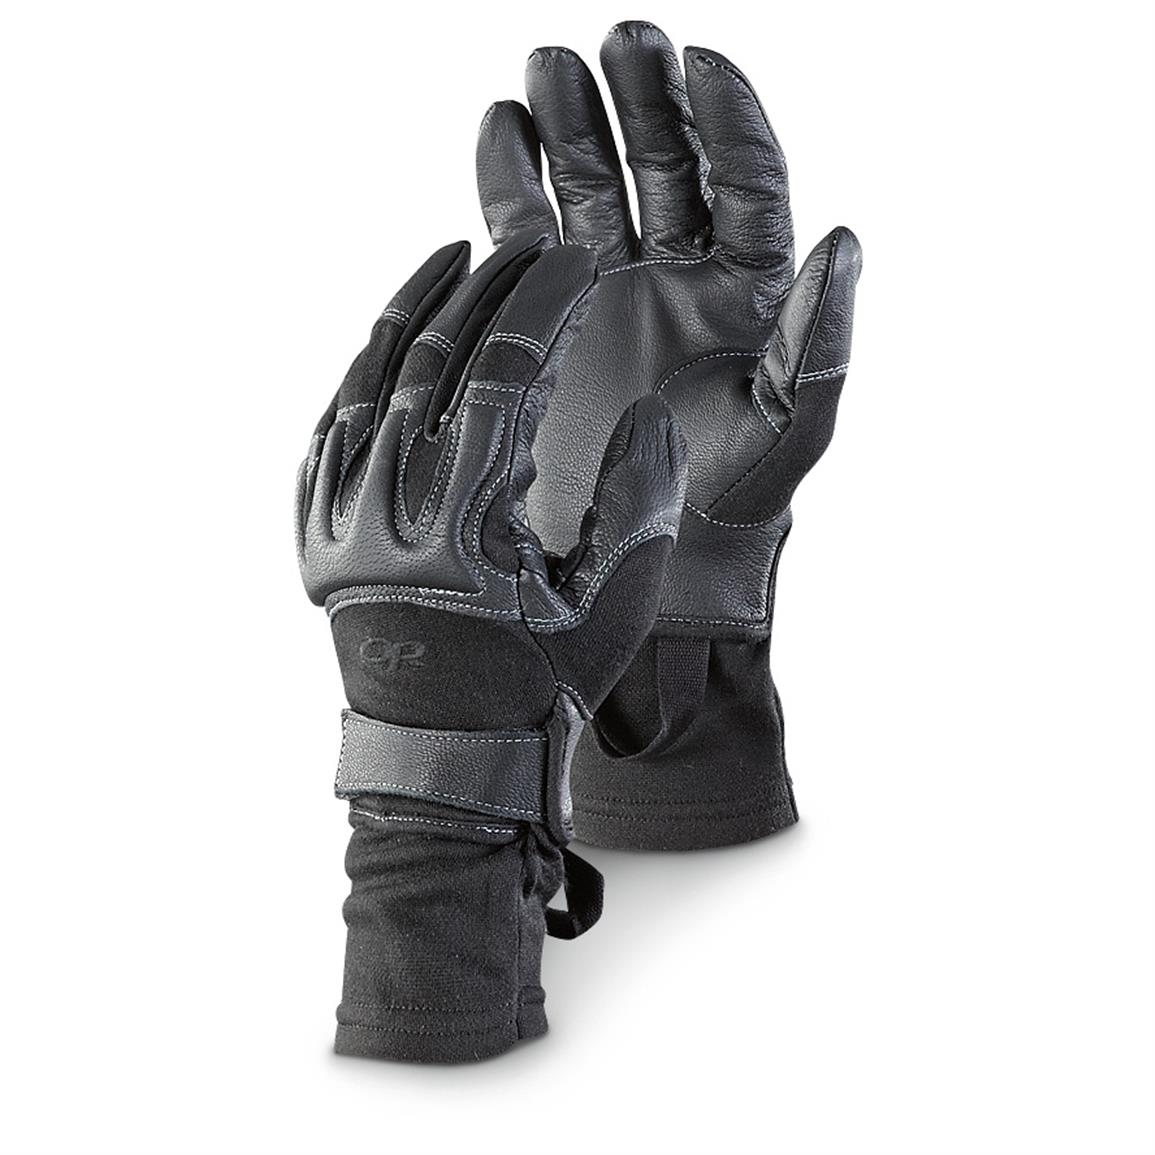 Outdoor Research Men's Rockfall Gloves with Nomex, Black